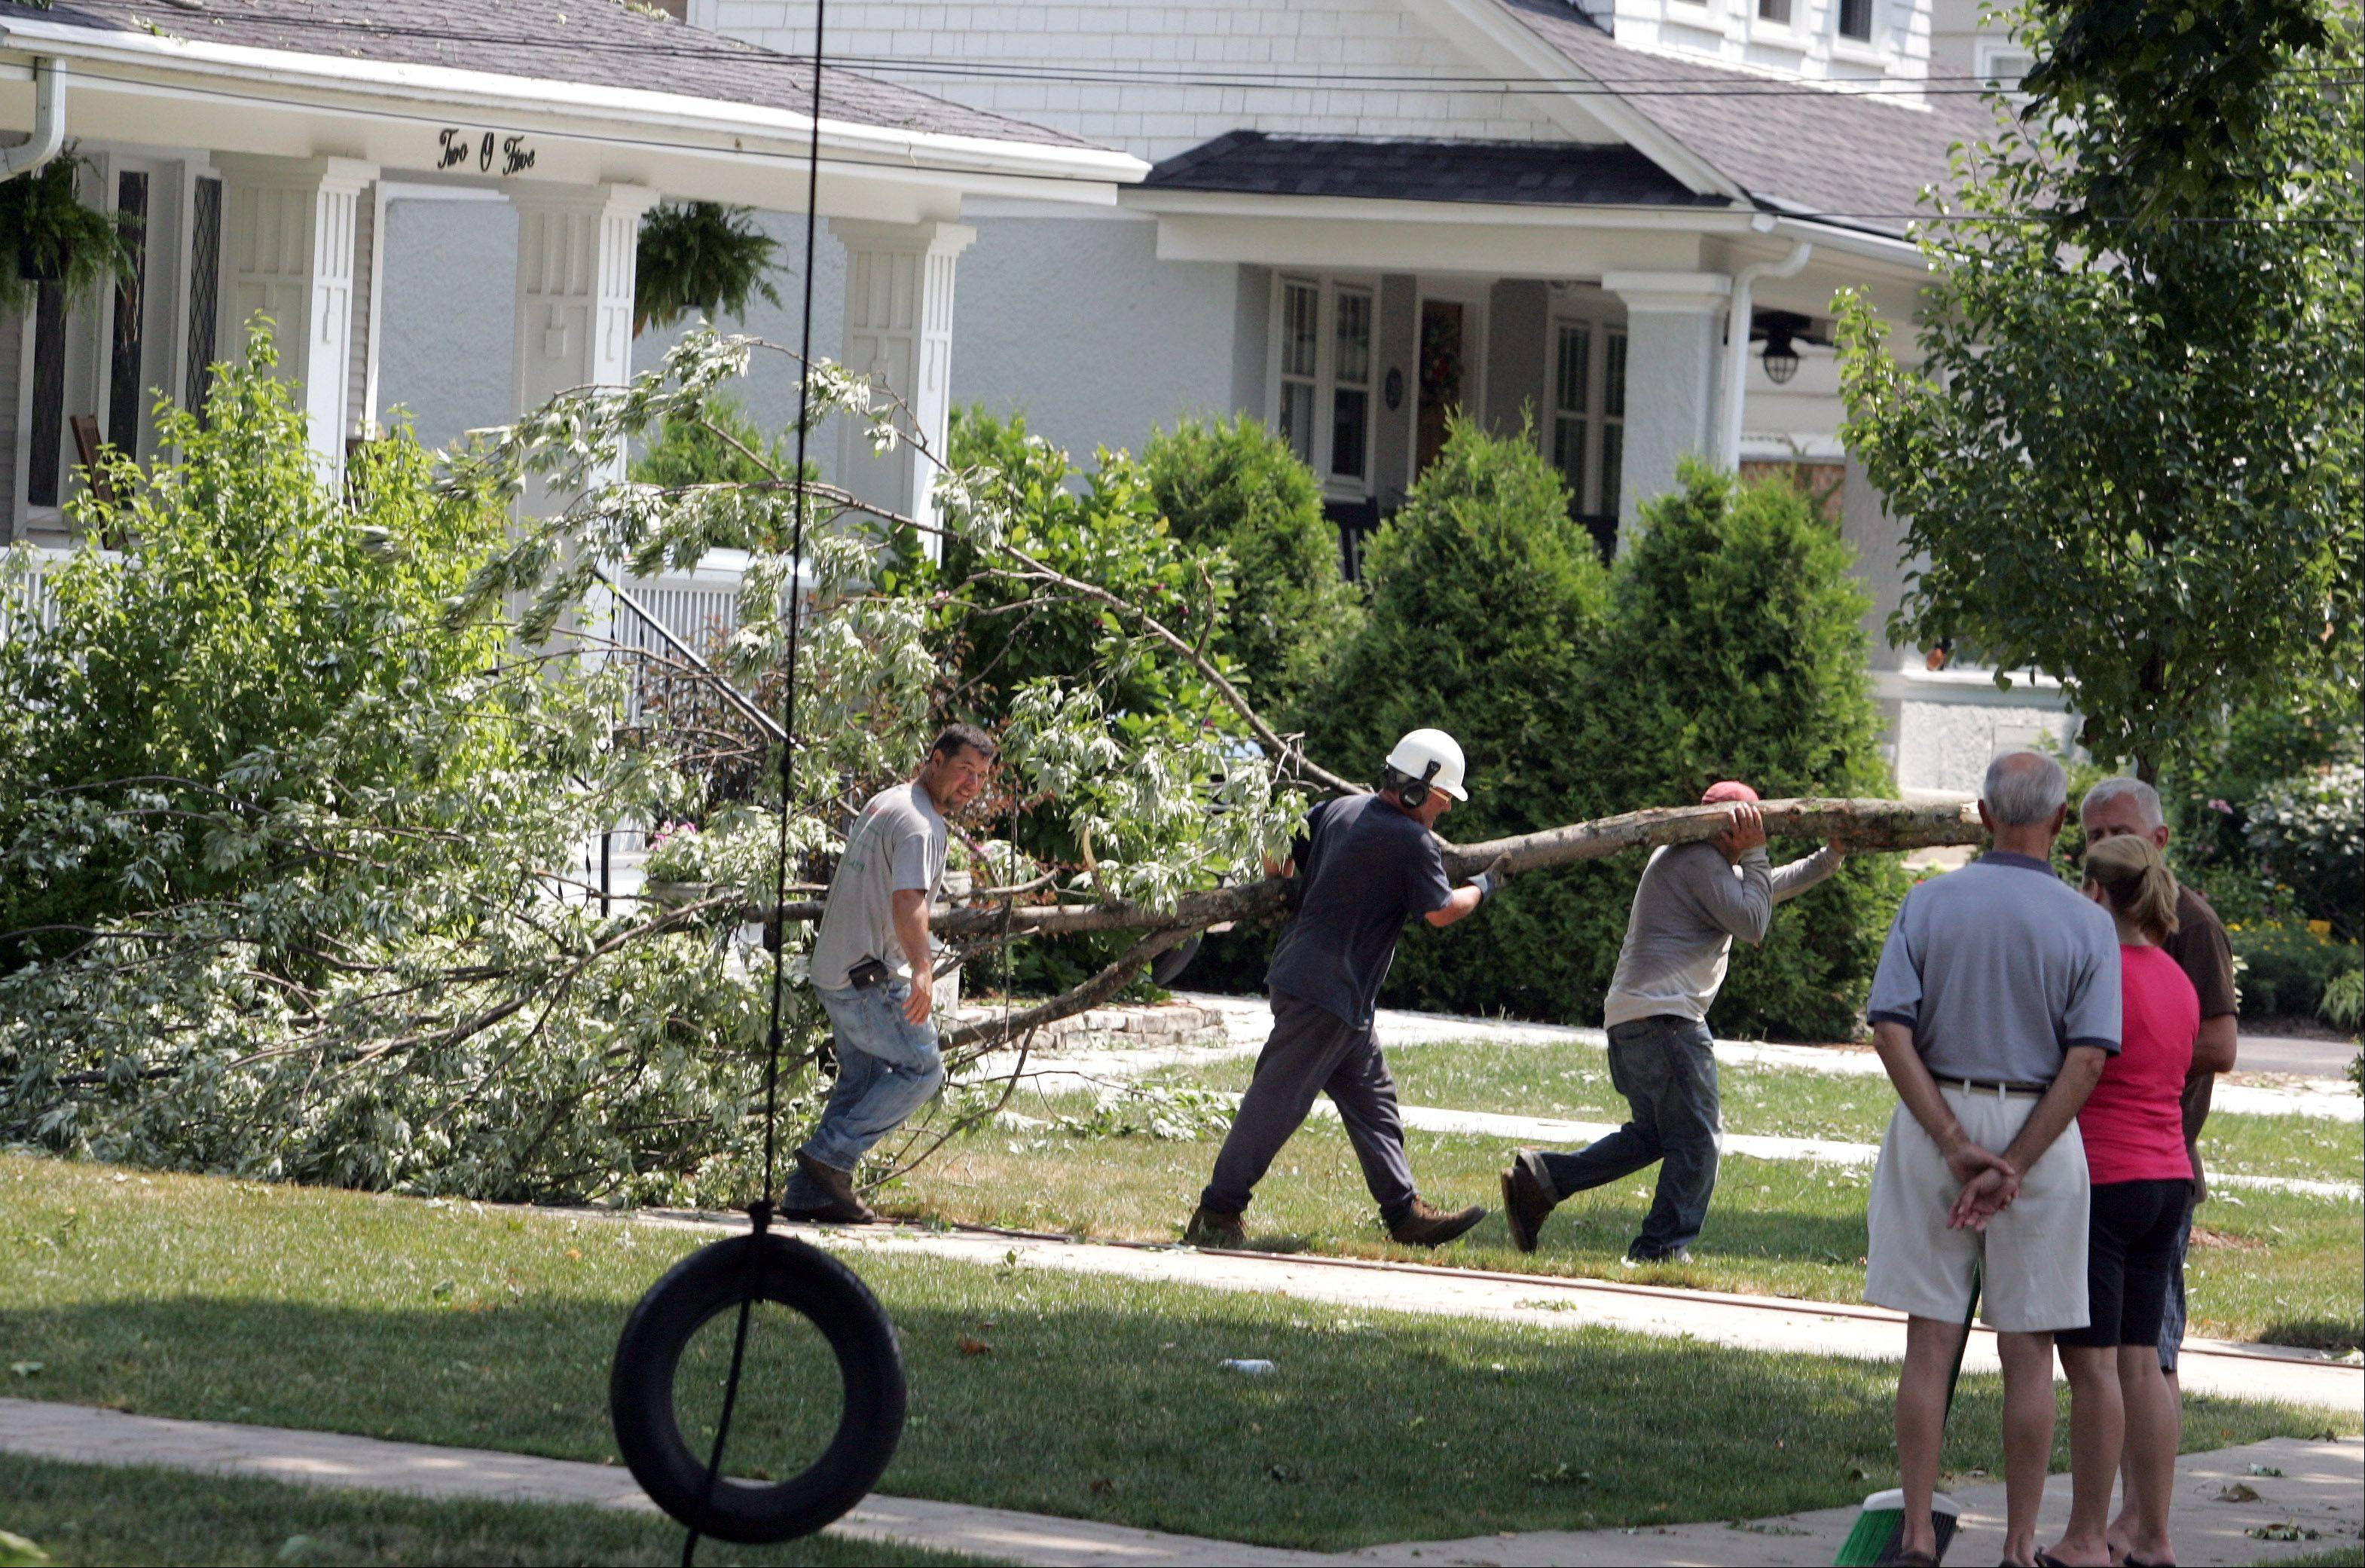 Crews carry away tree branches Monday morning on the 200 block of West Jefferson in Wheaton.